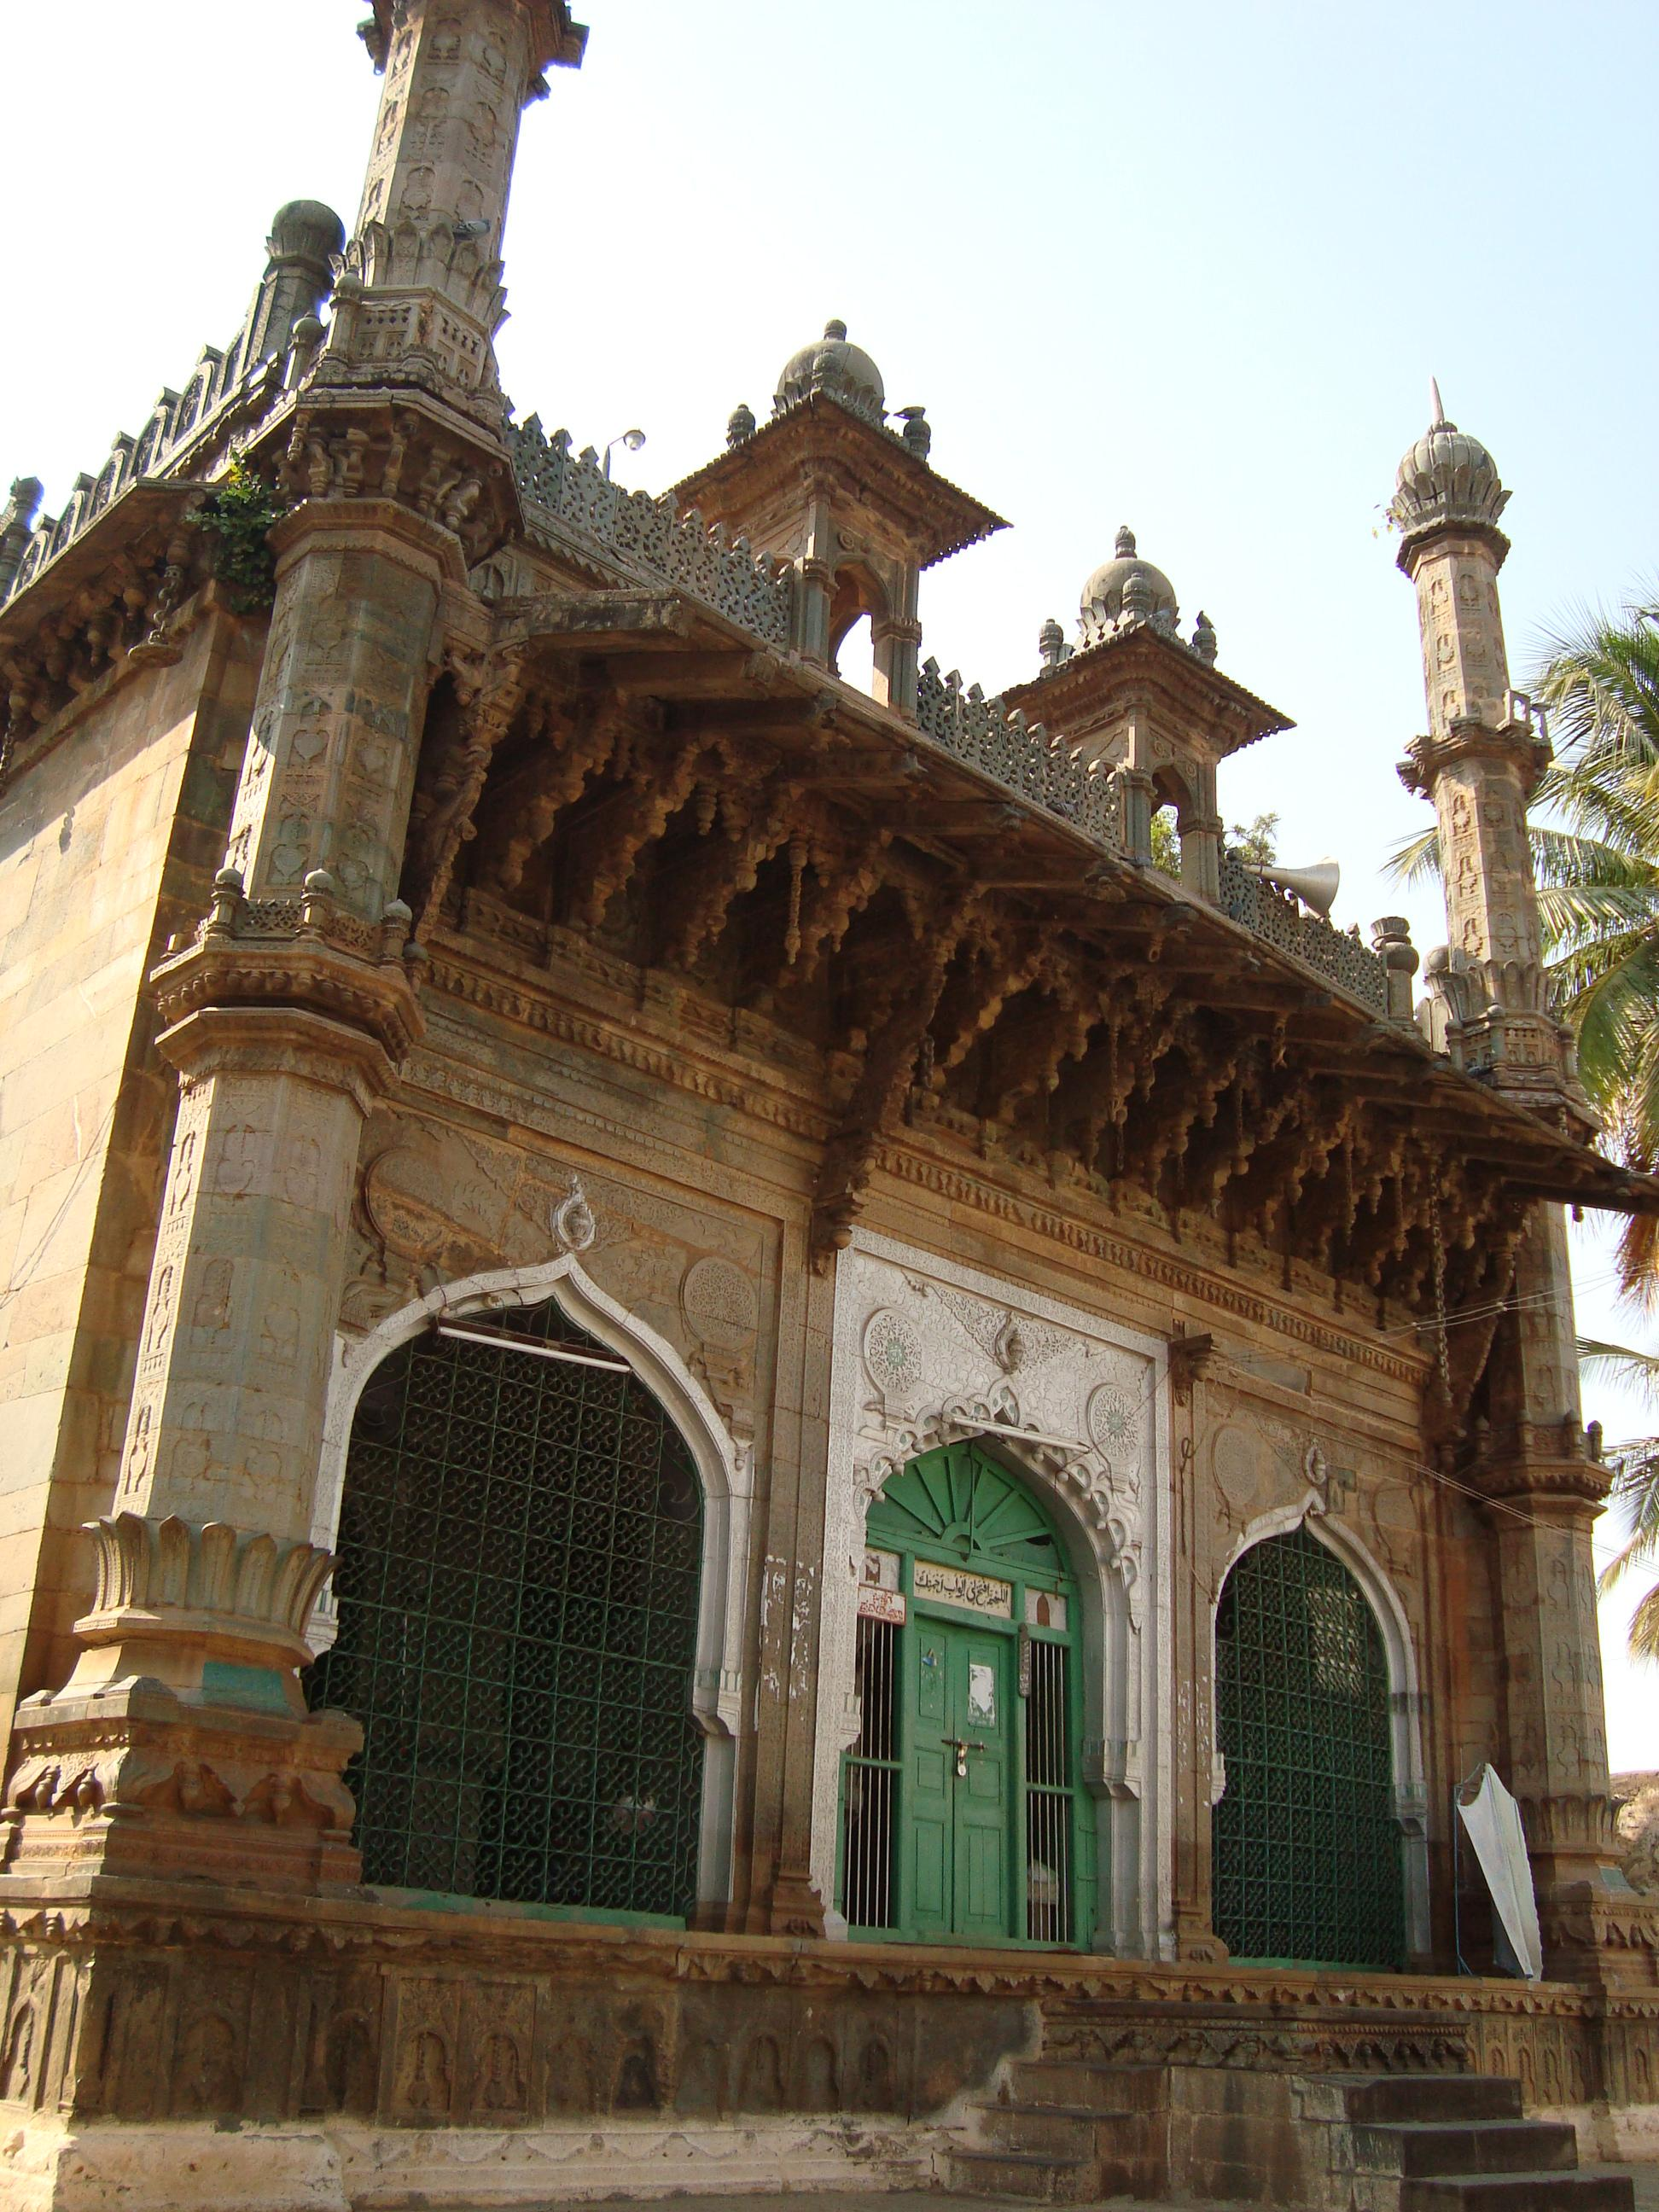 Jumma Masjid at Lakshmeshwara, North Karnataka